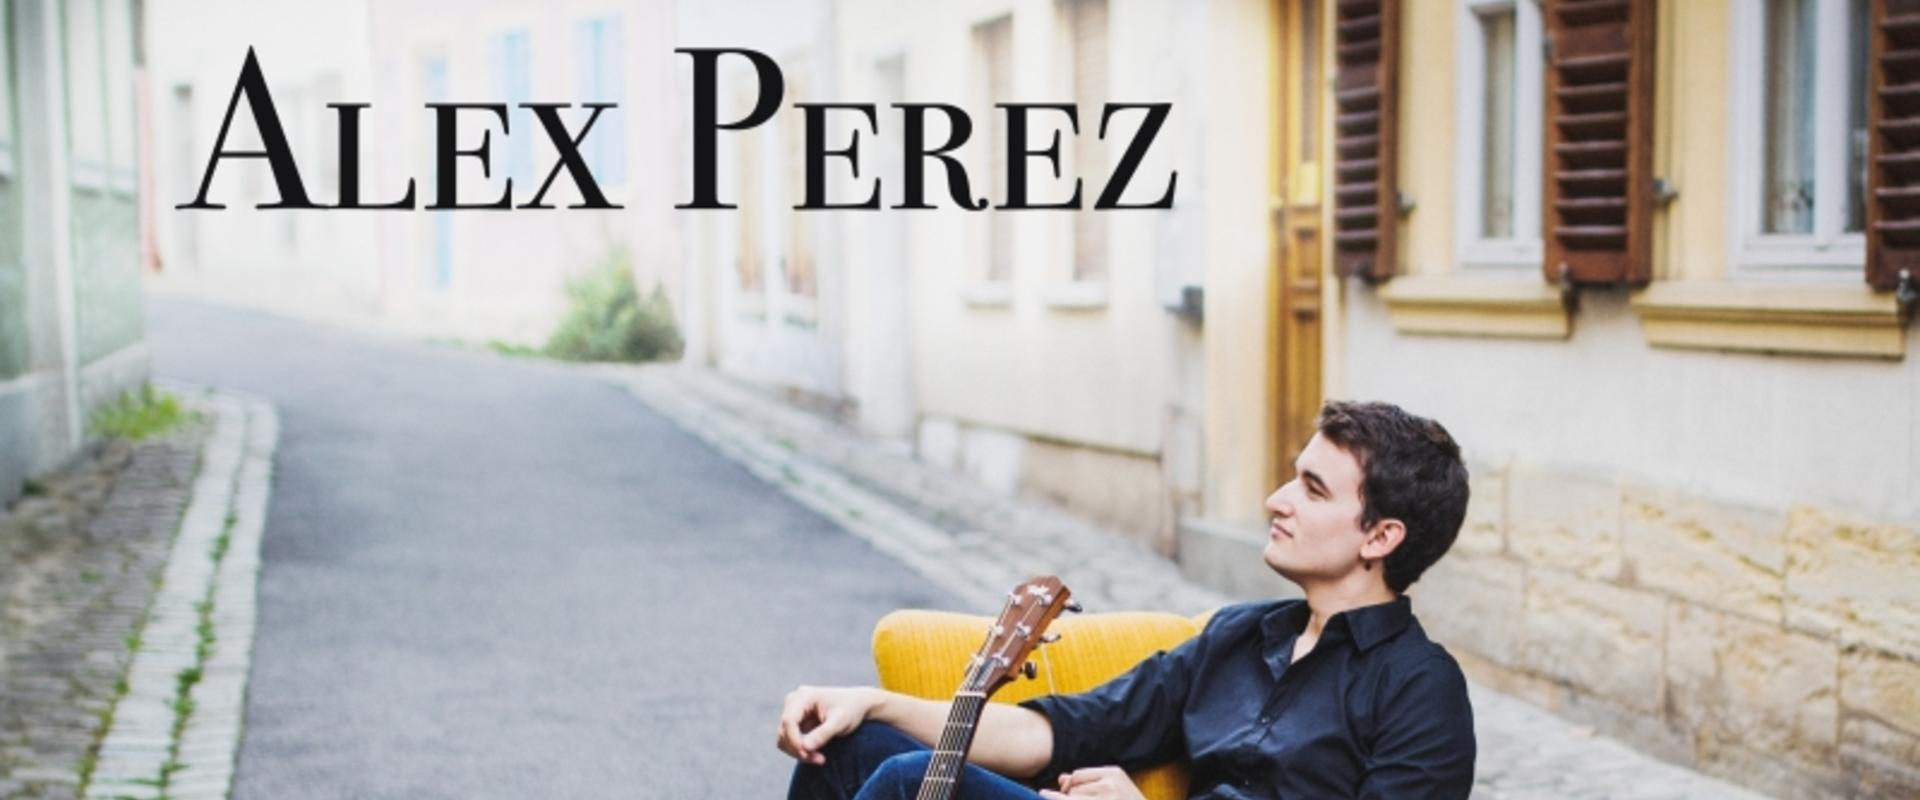 Alex Perez - Lilly